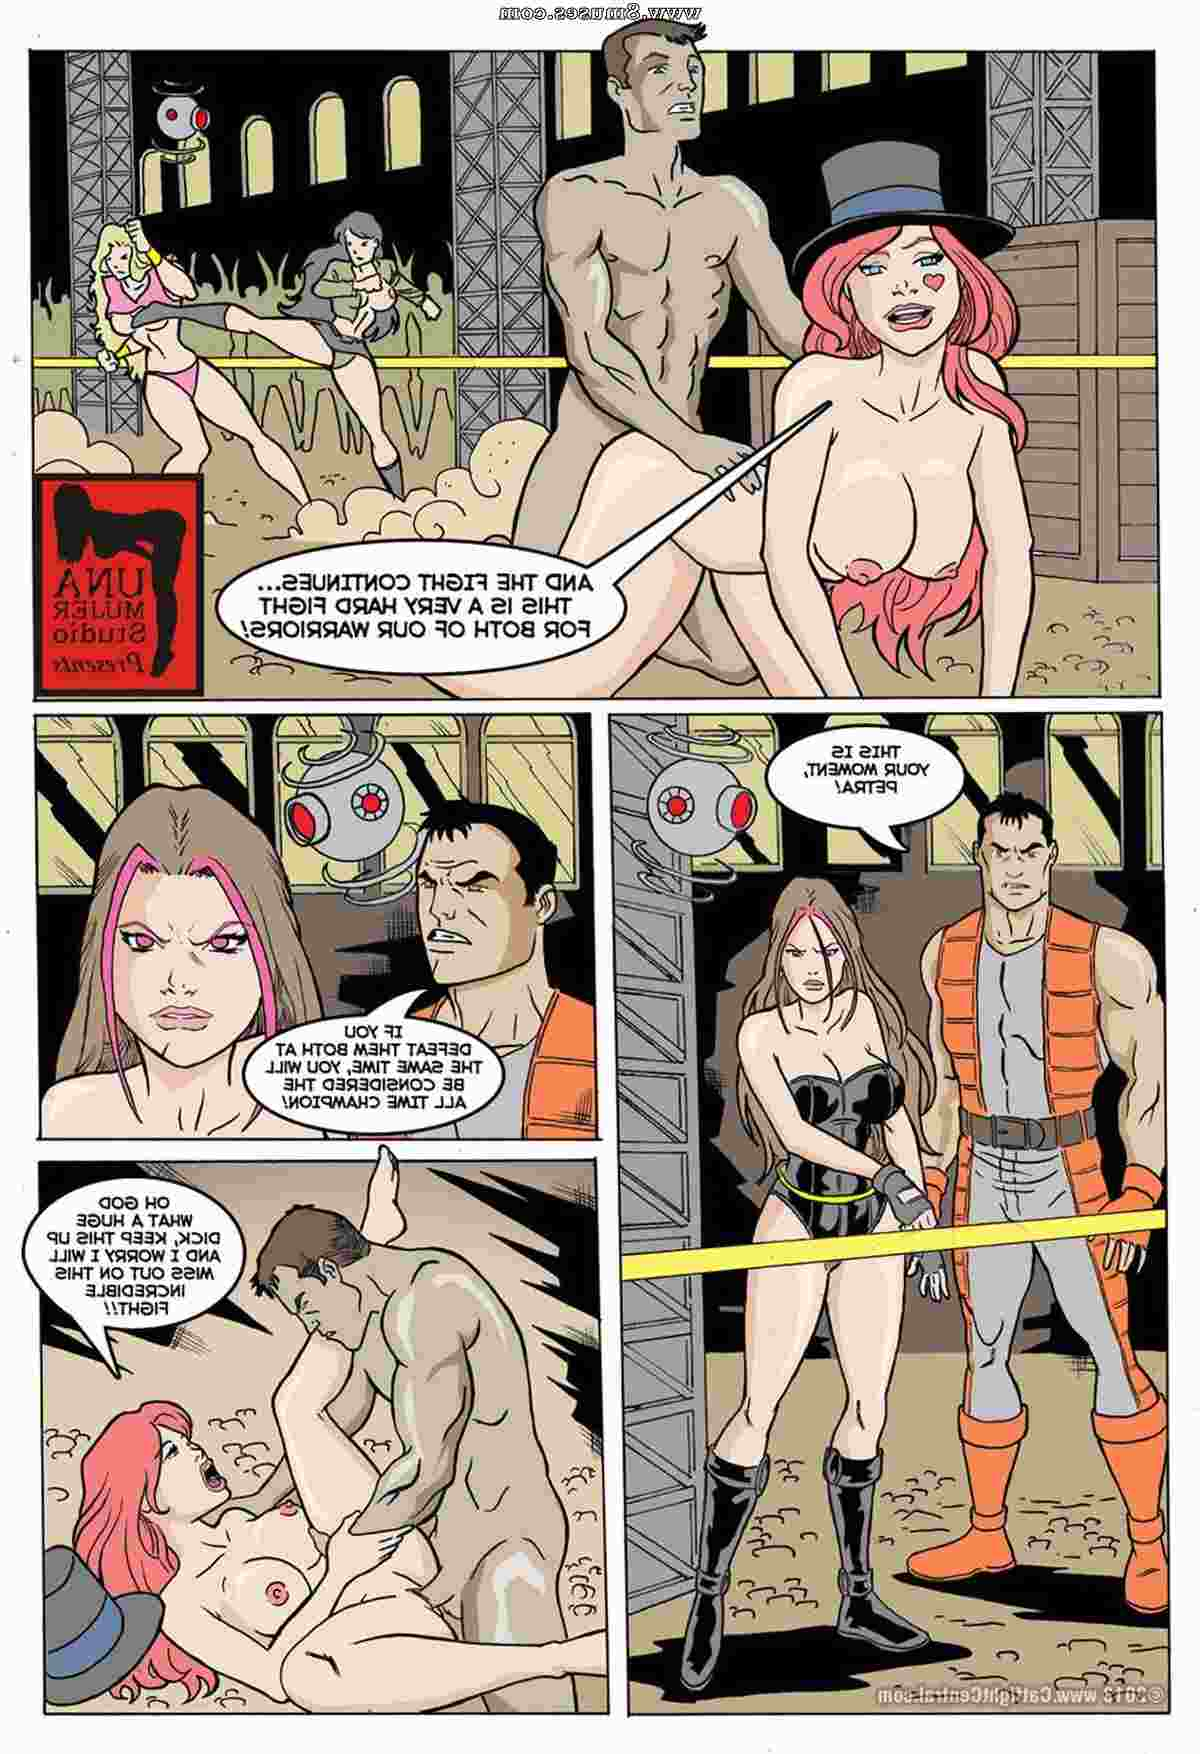 Central-Comics/Catfight-Central/Hipersex-Arena Hipersex_Arena__8muses_-_Sex_and_Porn_Comics_96.jpg